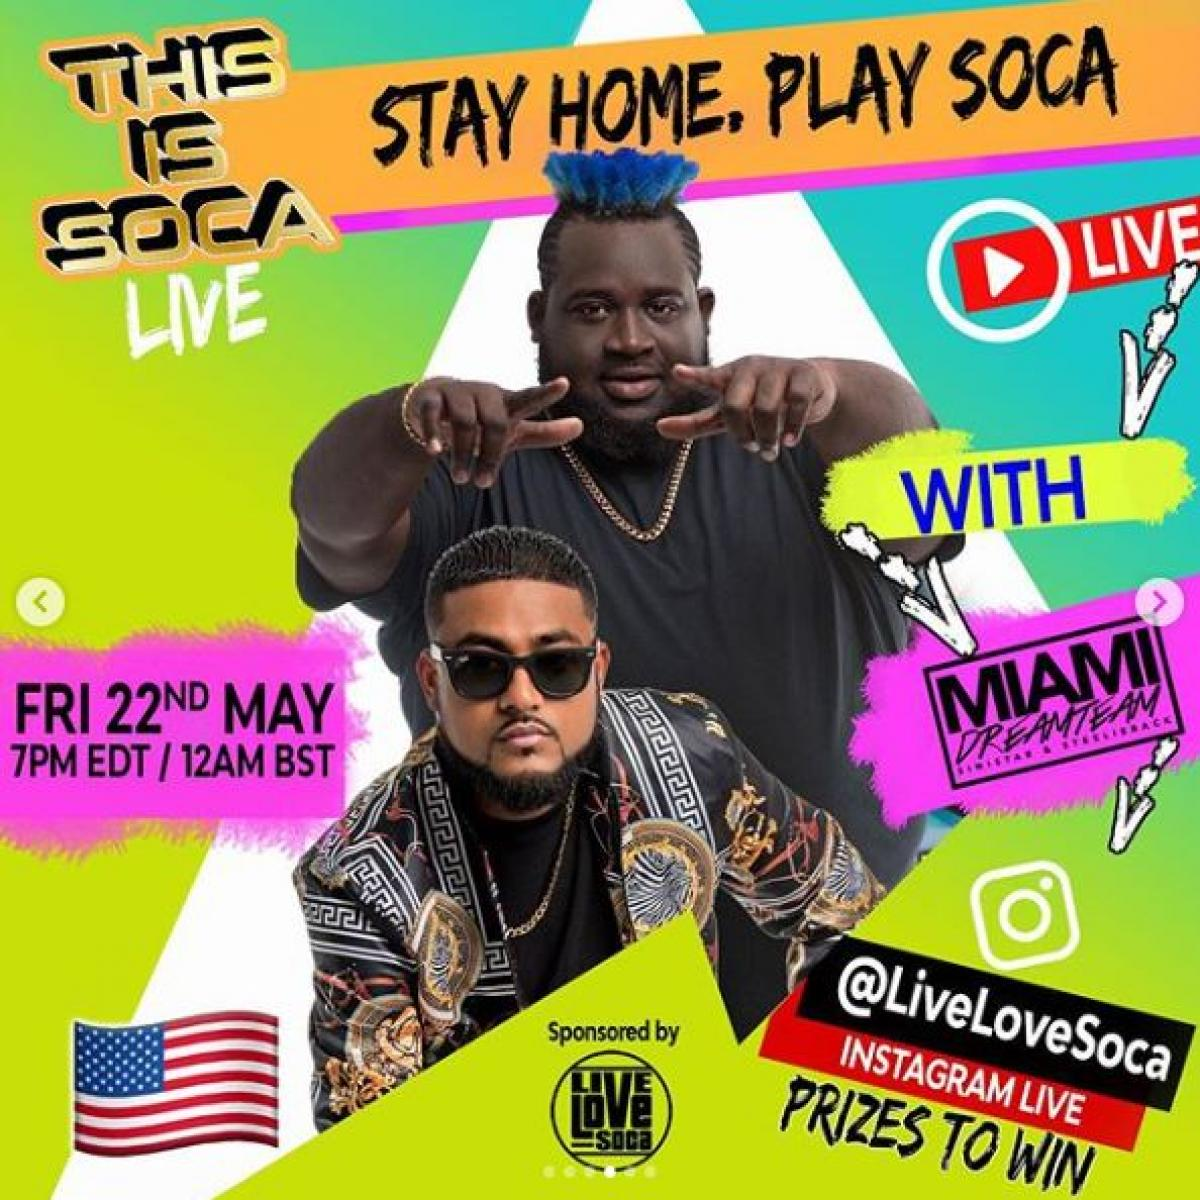 Stay Home. Play Soca flyer or graphic.